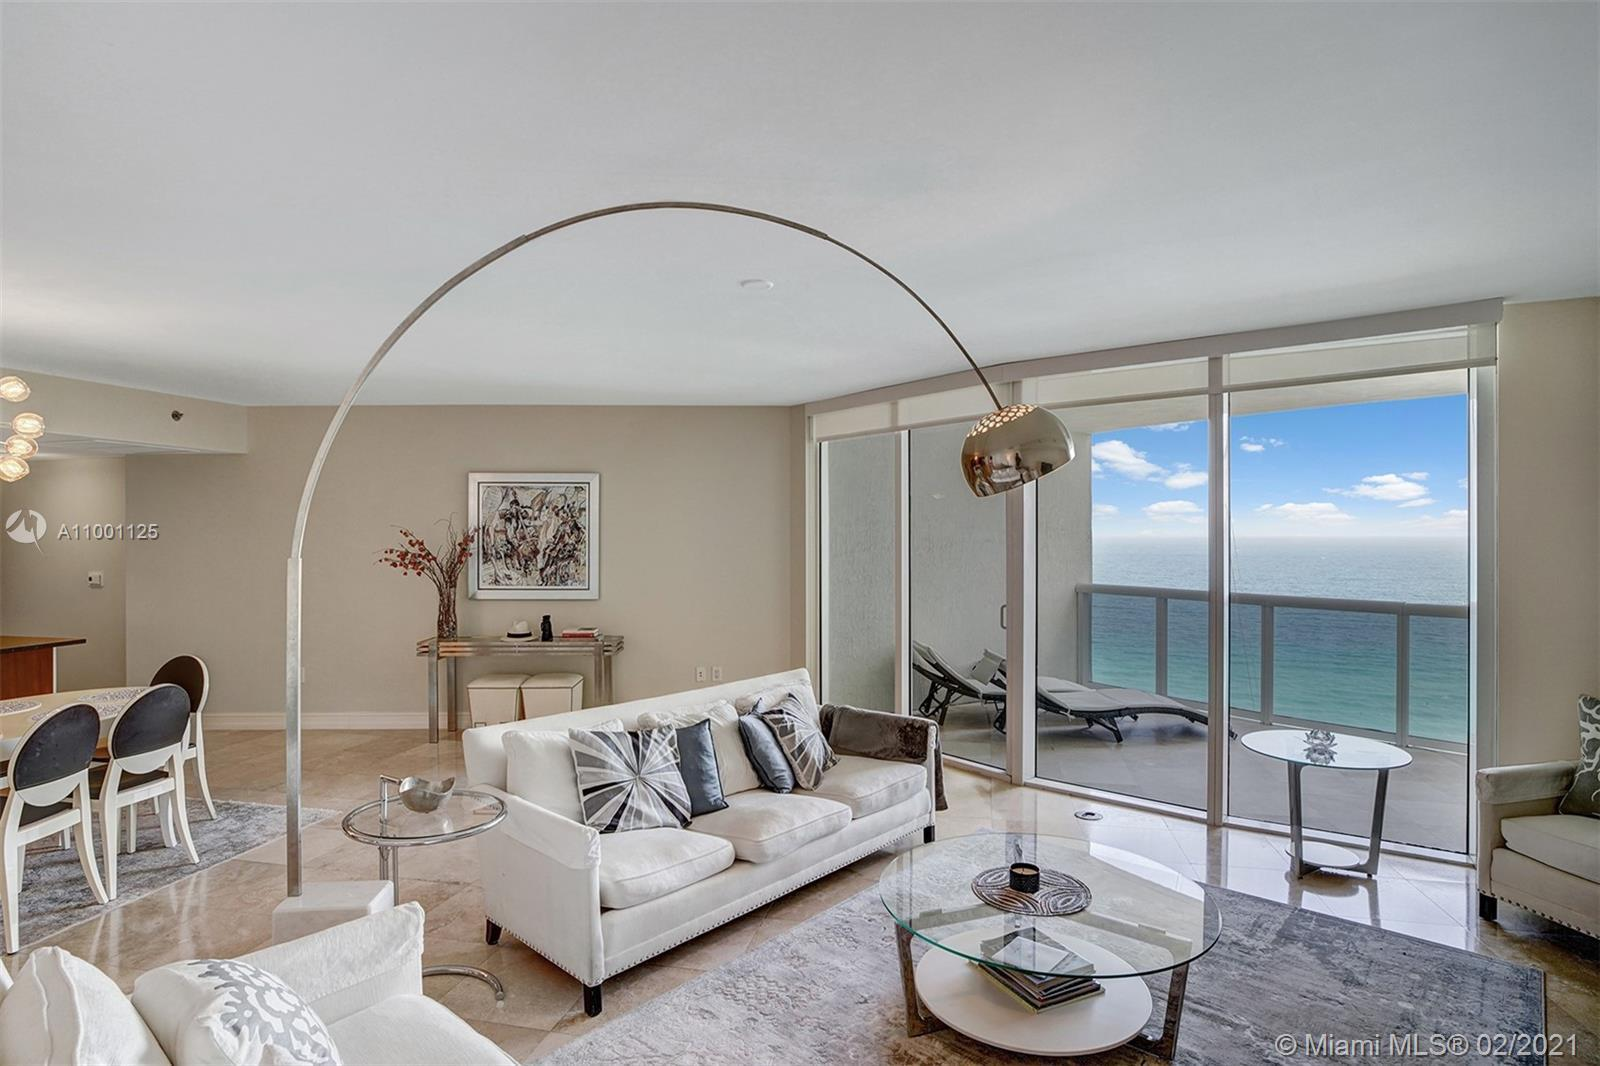 Luxury Apartment at Ocean Four in Sunny Isles - Oceanfront & on beach with sunrise & sunset views fr